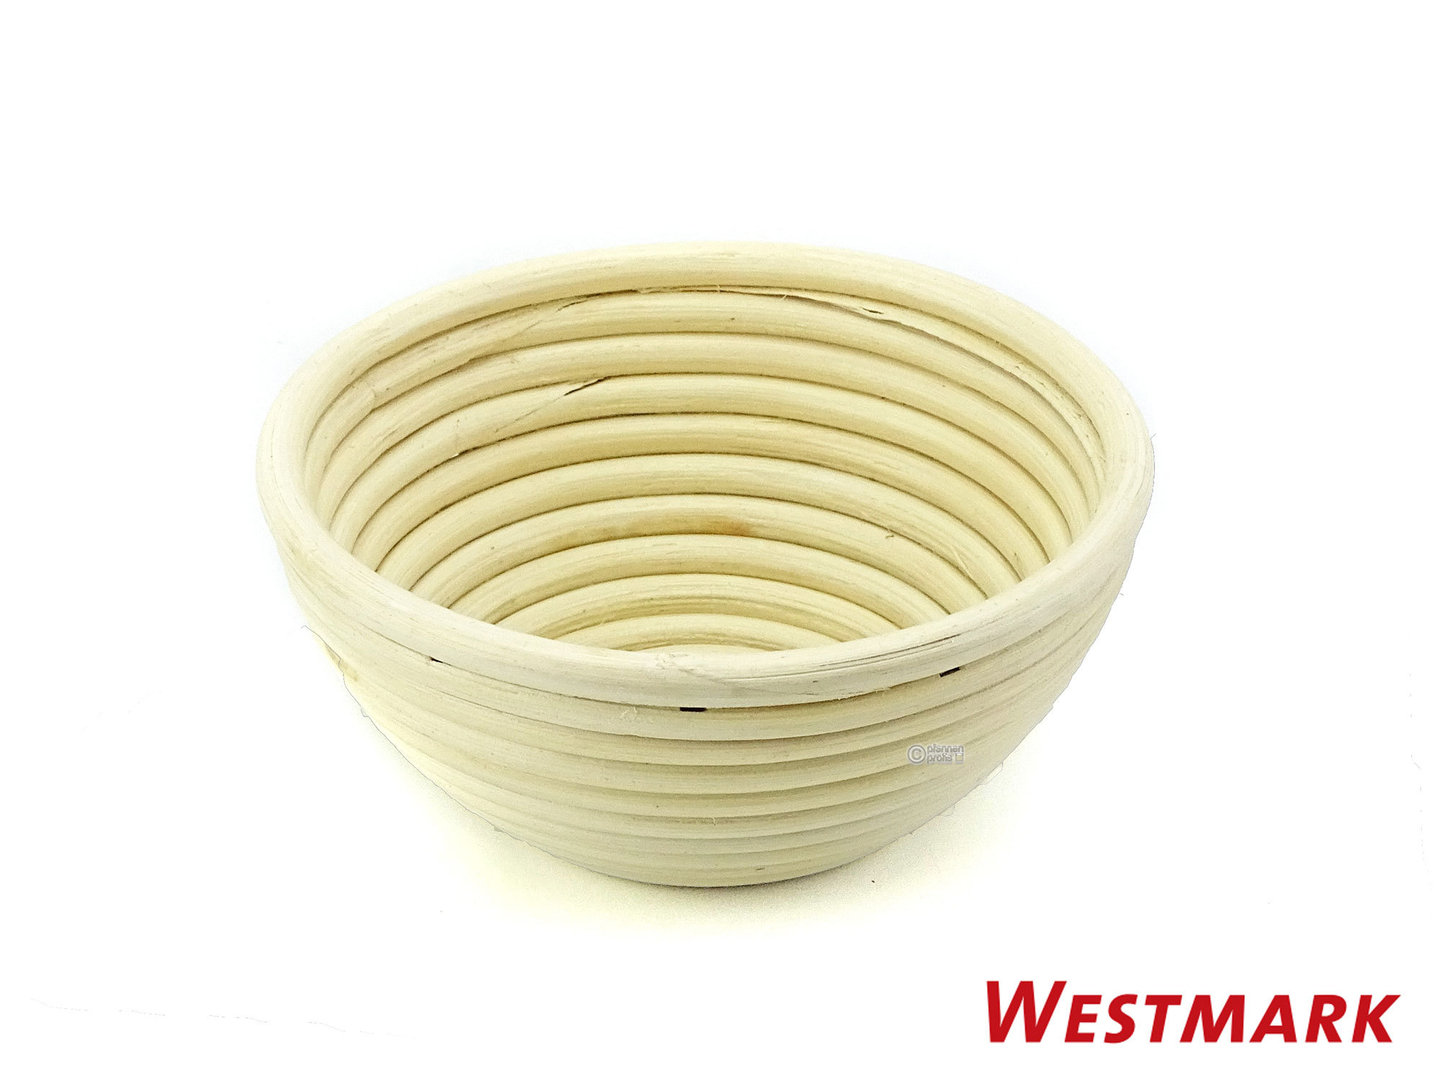 WESTMARK proofing basket round small